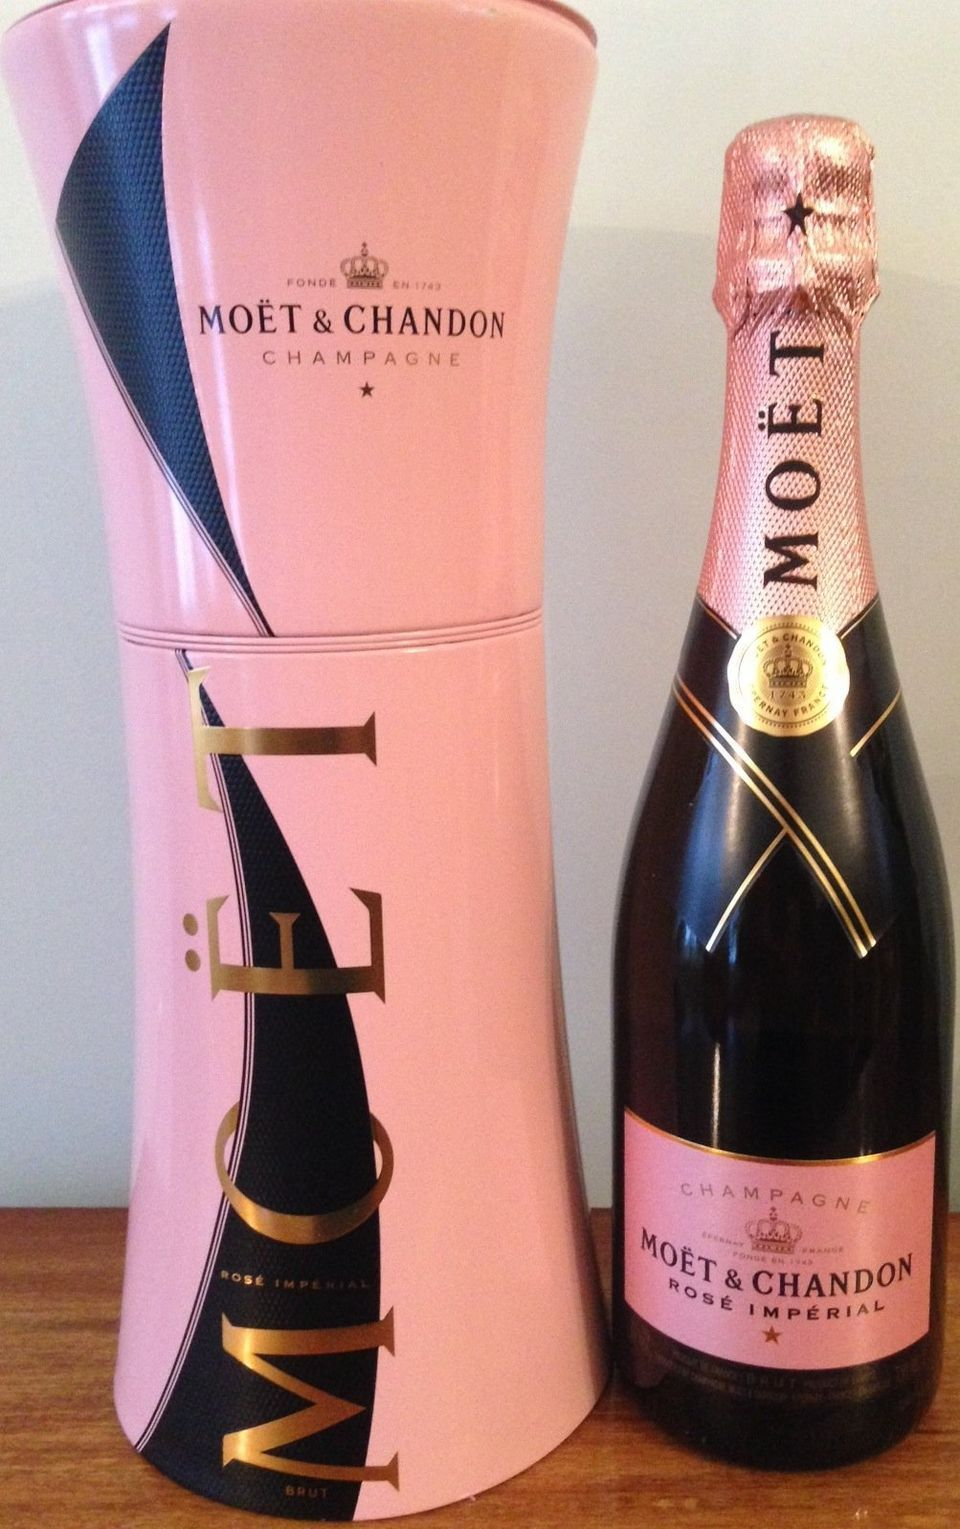 Get fancy with Moet & Chandon Imperial Rose. Its container helps keep a chilled bottle cool. Retails for $55.